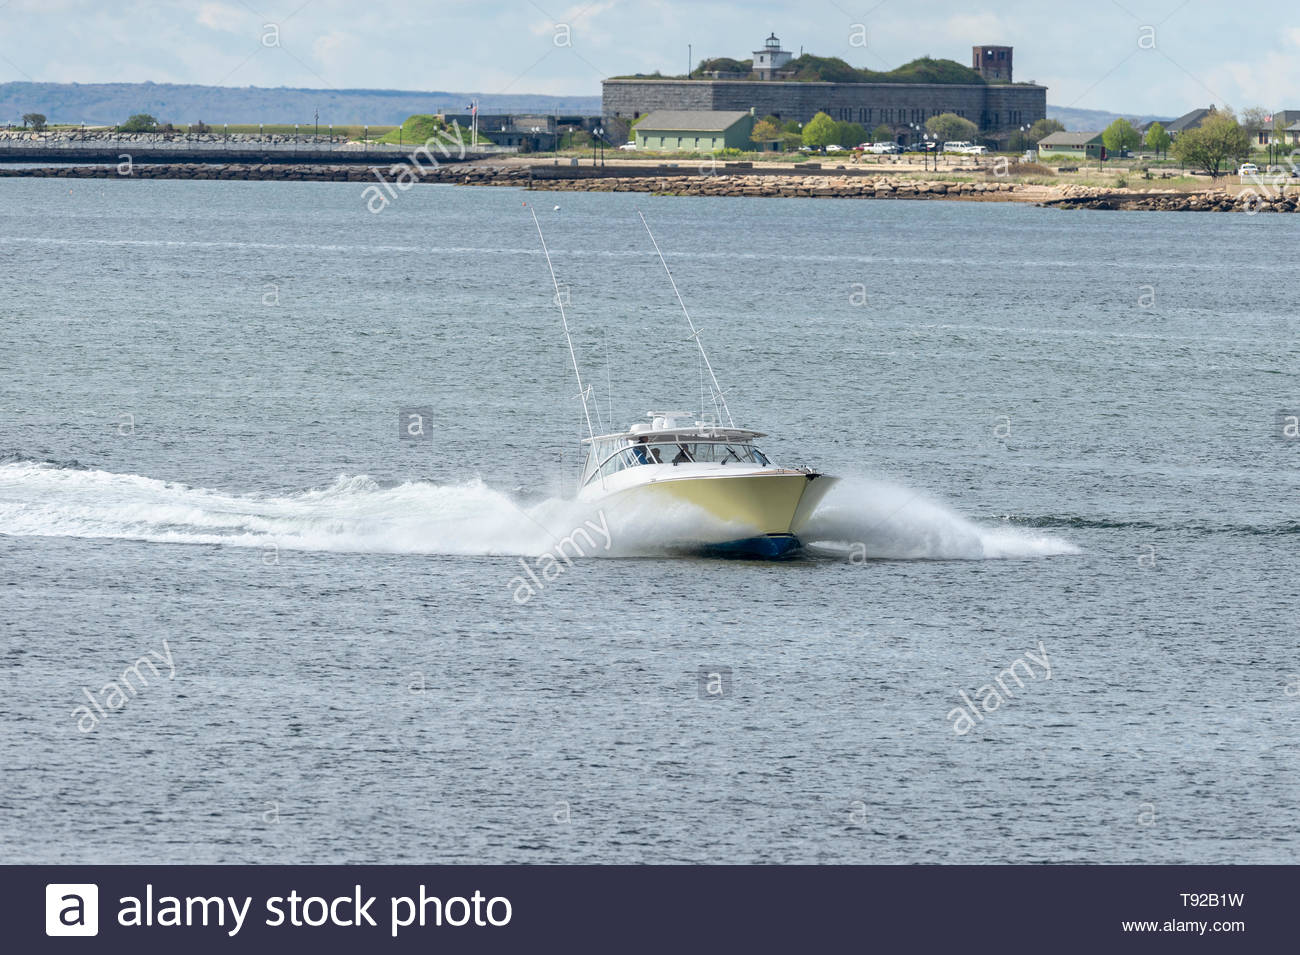 New Bedford, Massachusetts, USA - May 15, 2019: Powerboat